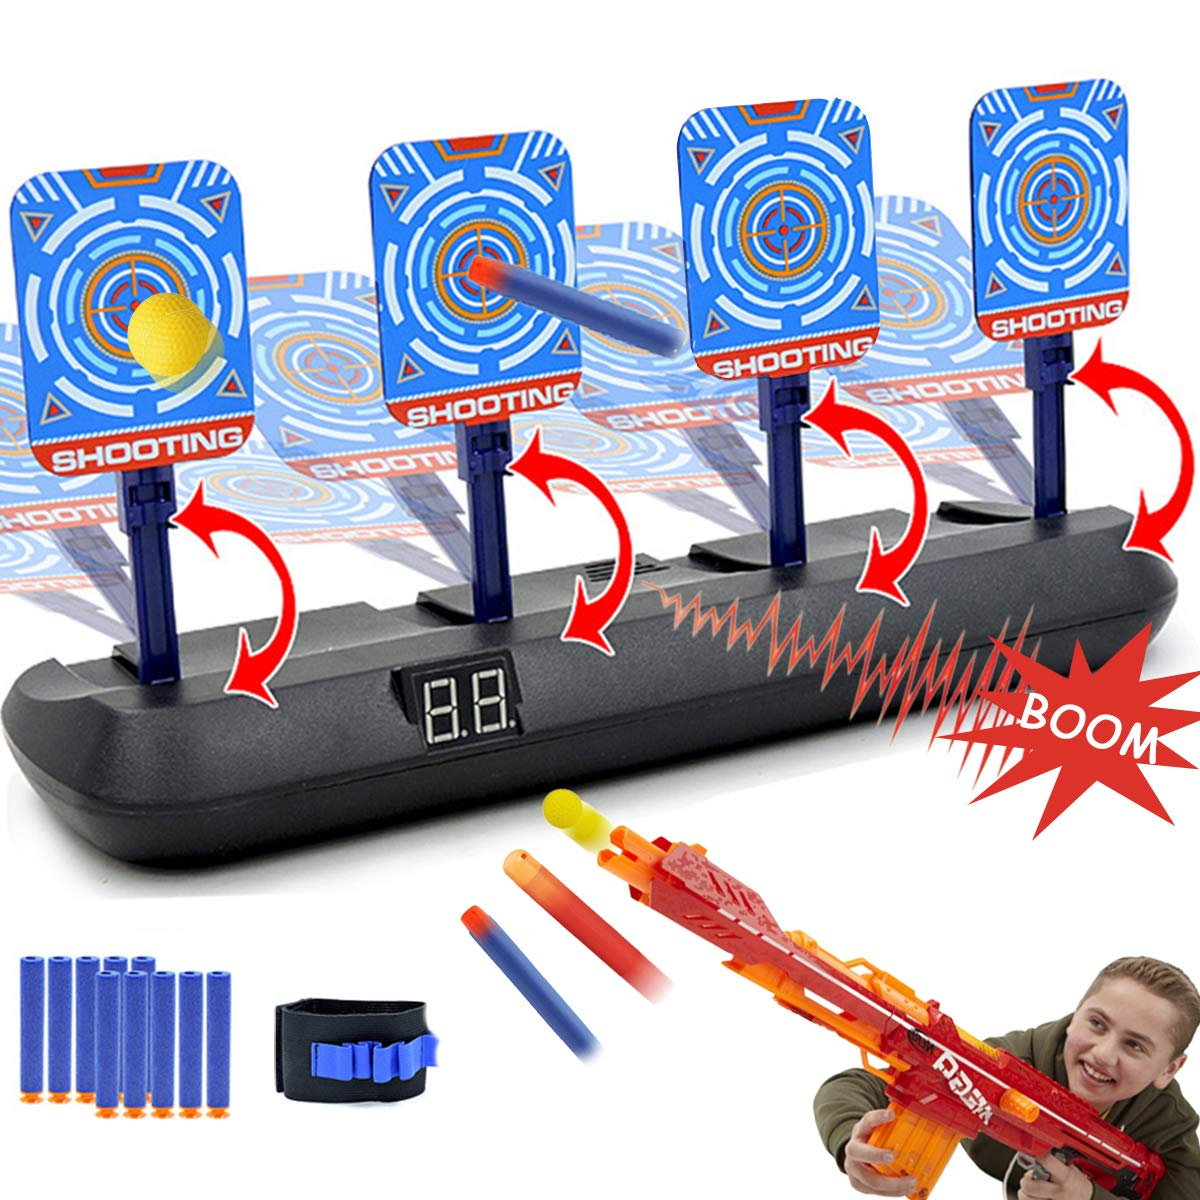 Electric Scoring Target for Nerf Guns - Auto Reset Intelligent Light Sound Effect Digital Shooting Targets, Ideal Gift Toys for Teens, Boys & Girls(2019 Update Version/4 Targets)